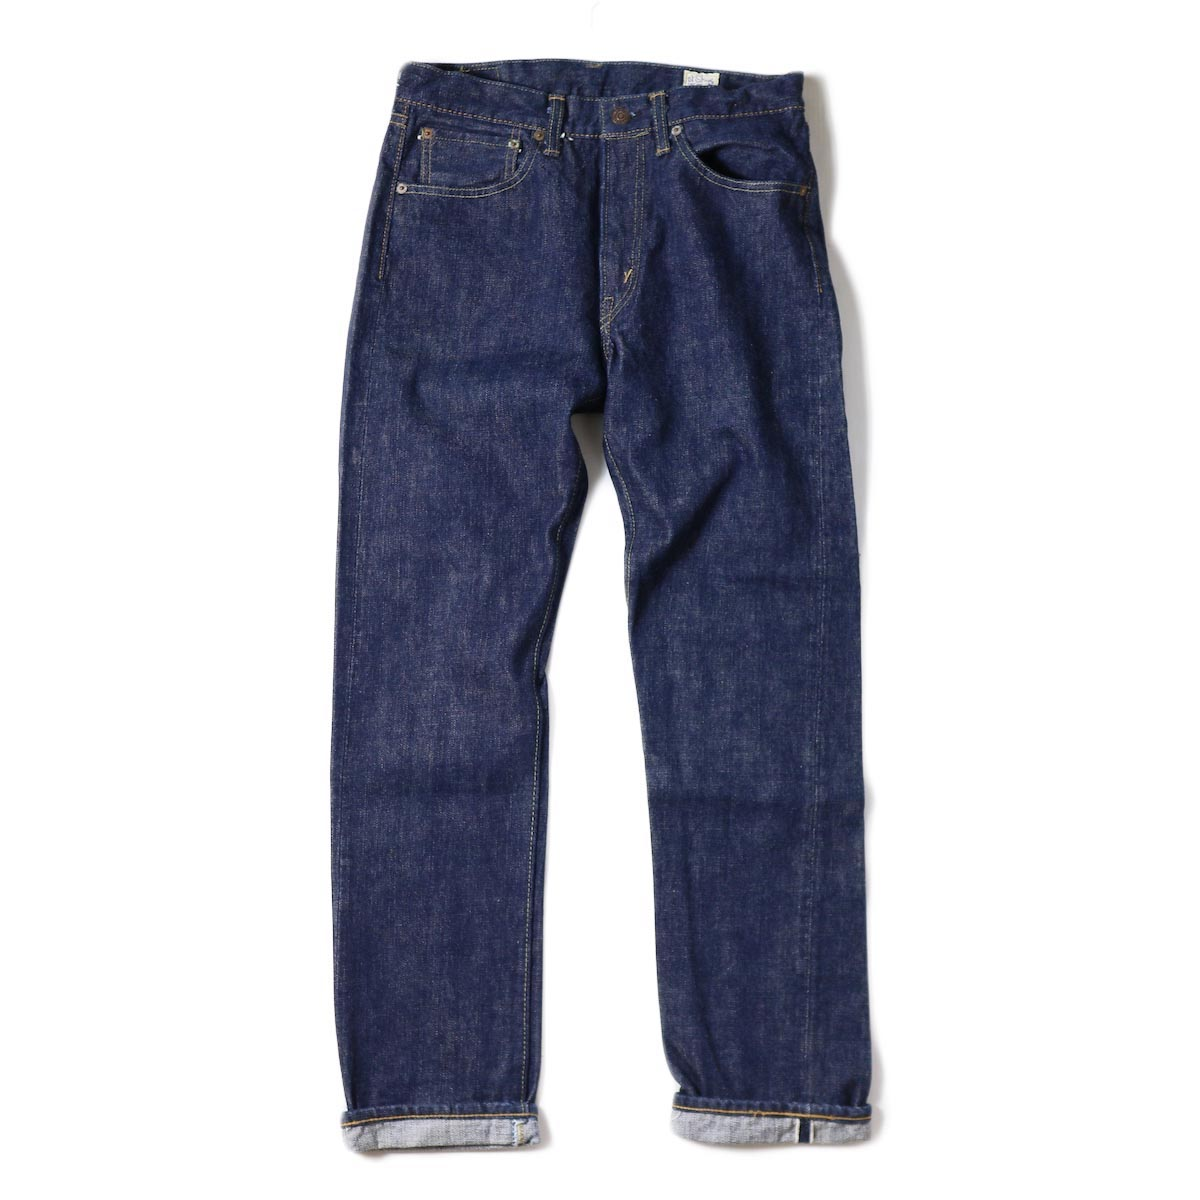 orSlow / 107 IVY FIT DENIM -One Wash